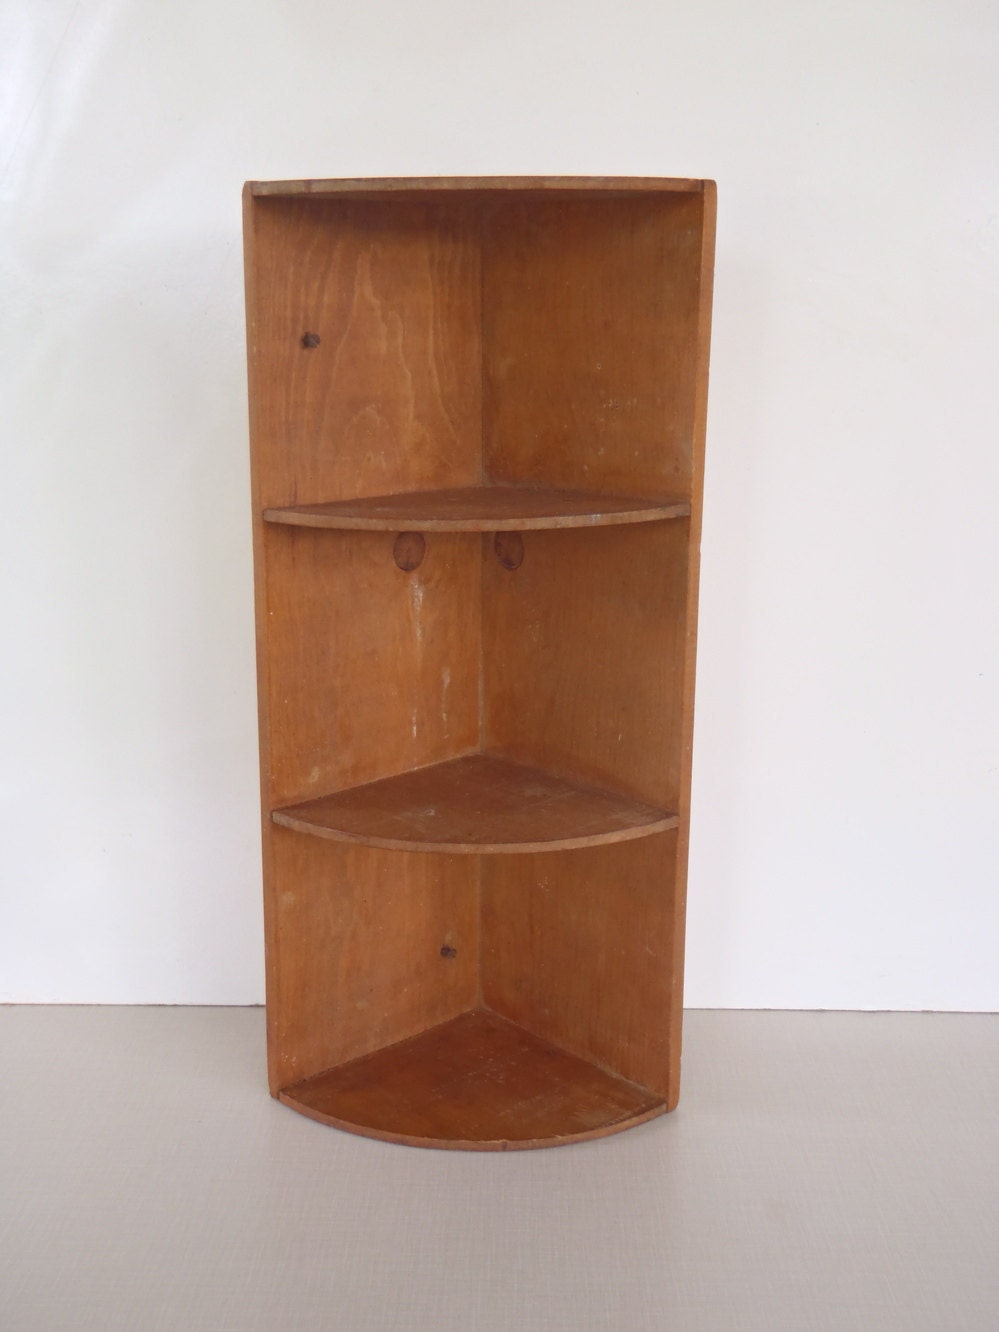 Handmade 1960s wooden corner kitchen shelf for Kitchen cabinet shelves